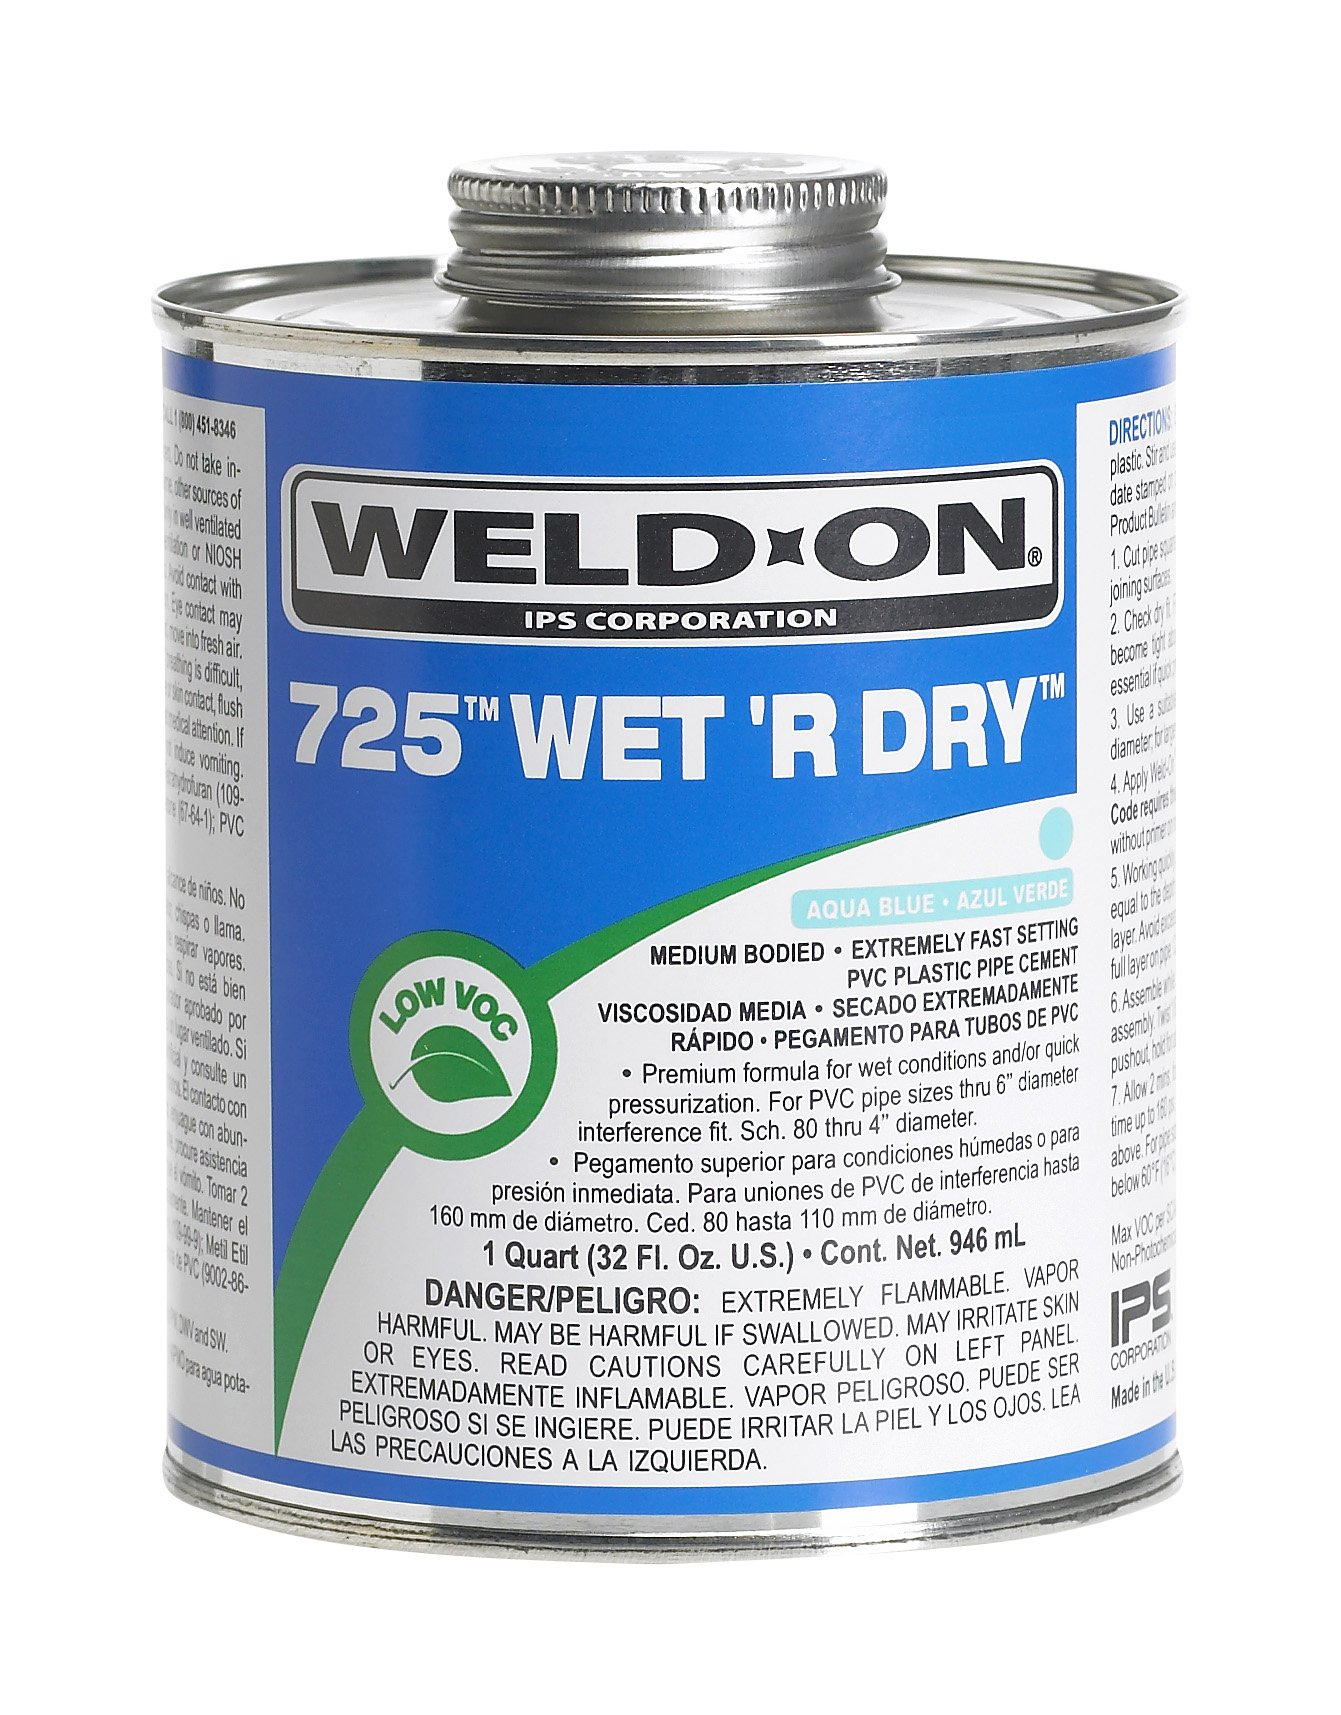 Weld-On 10850 Aqua Blue 725 Medium-Bodied Wet 'R Dry PVC Professional Industrial-Grade Cement, Extremely Fast-Setting, Low-VOC, 1/4 pint Can with Applicator Cap